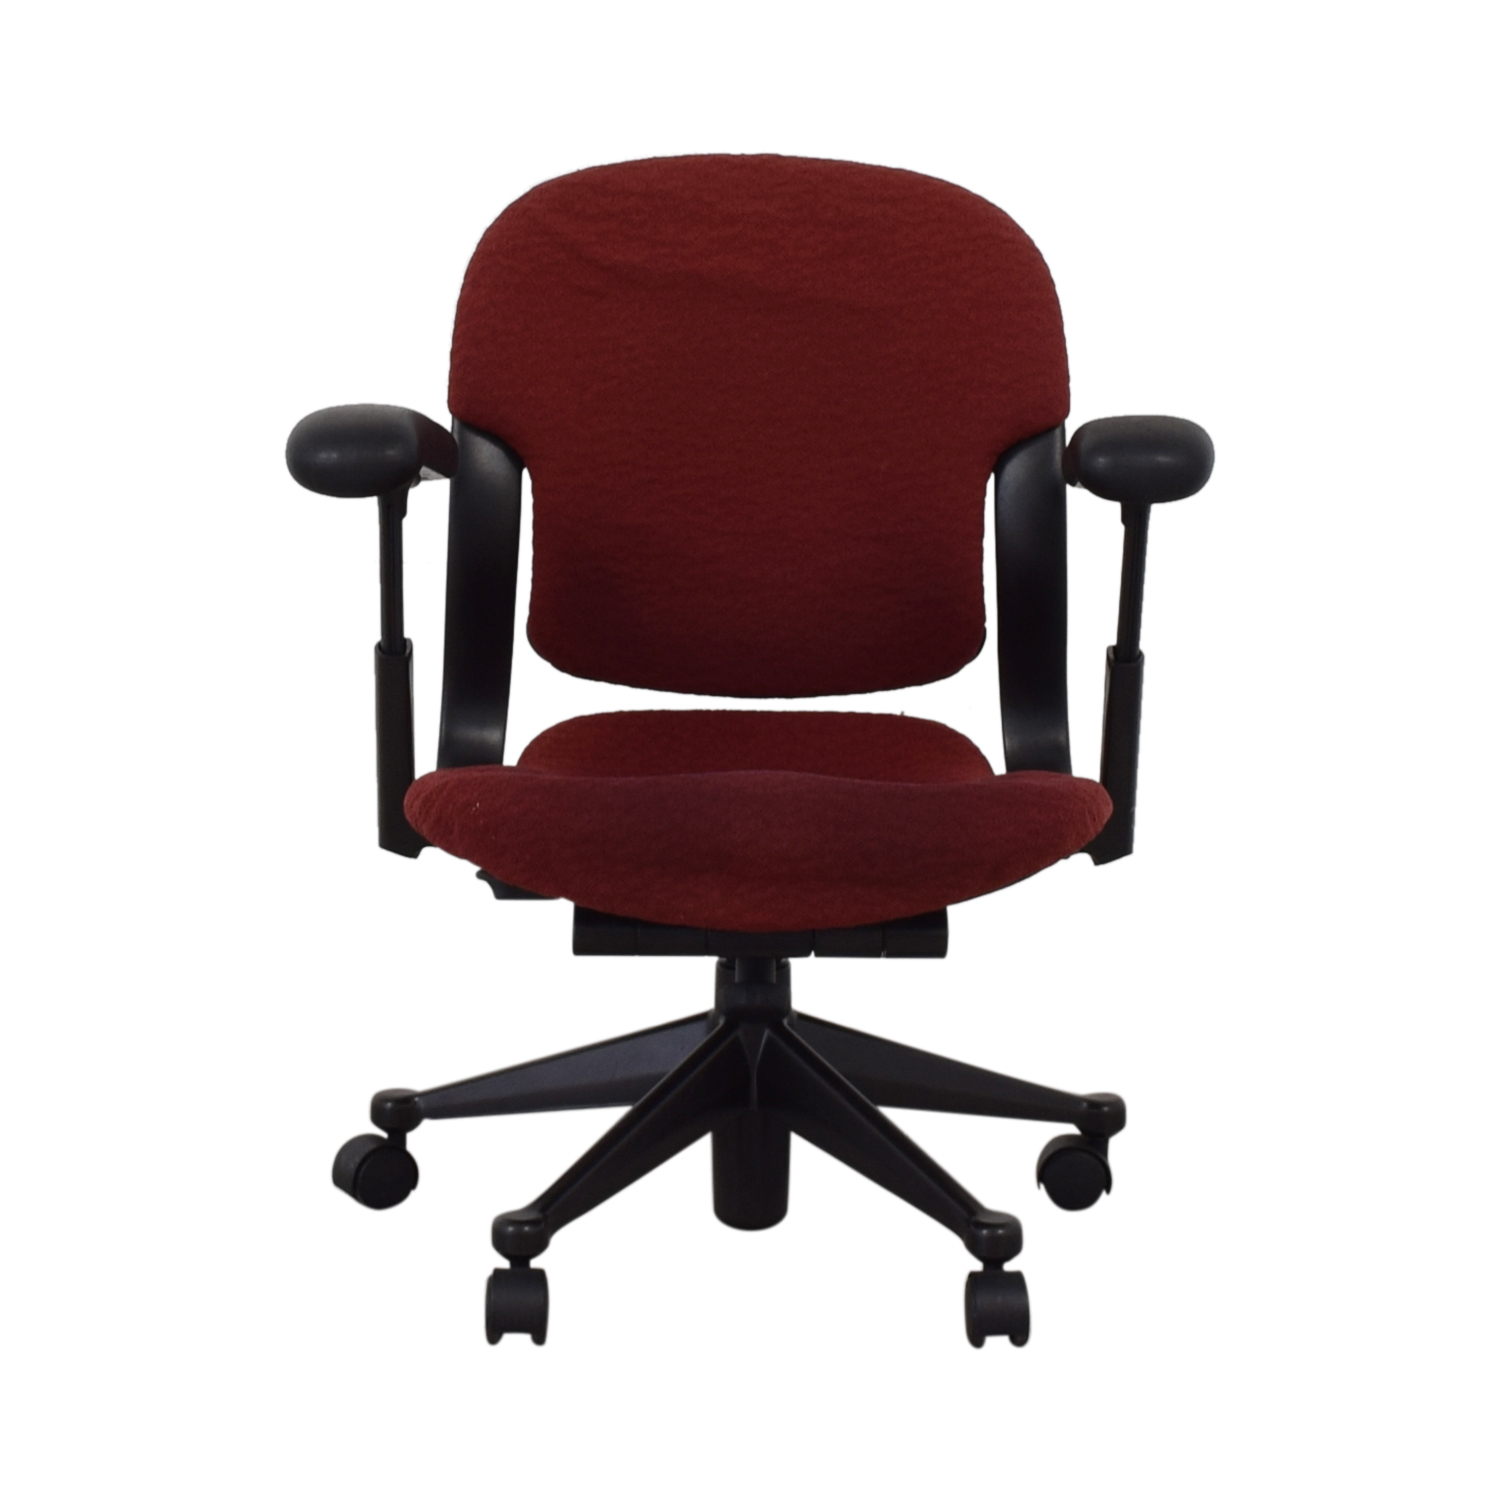 buy  Red Office Arm Chair online